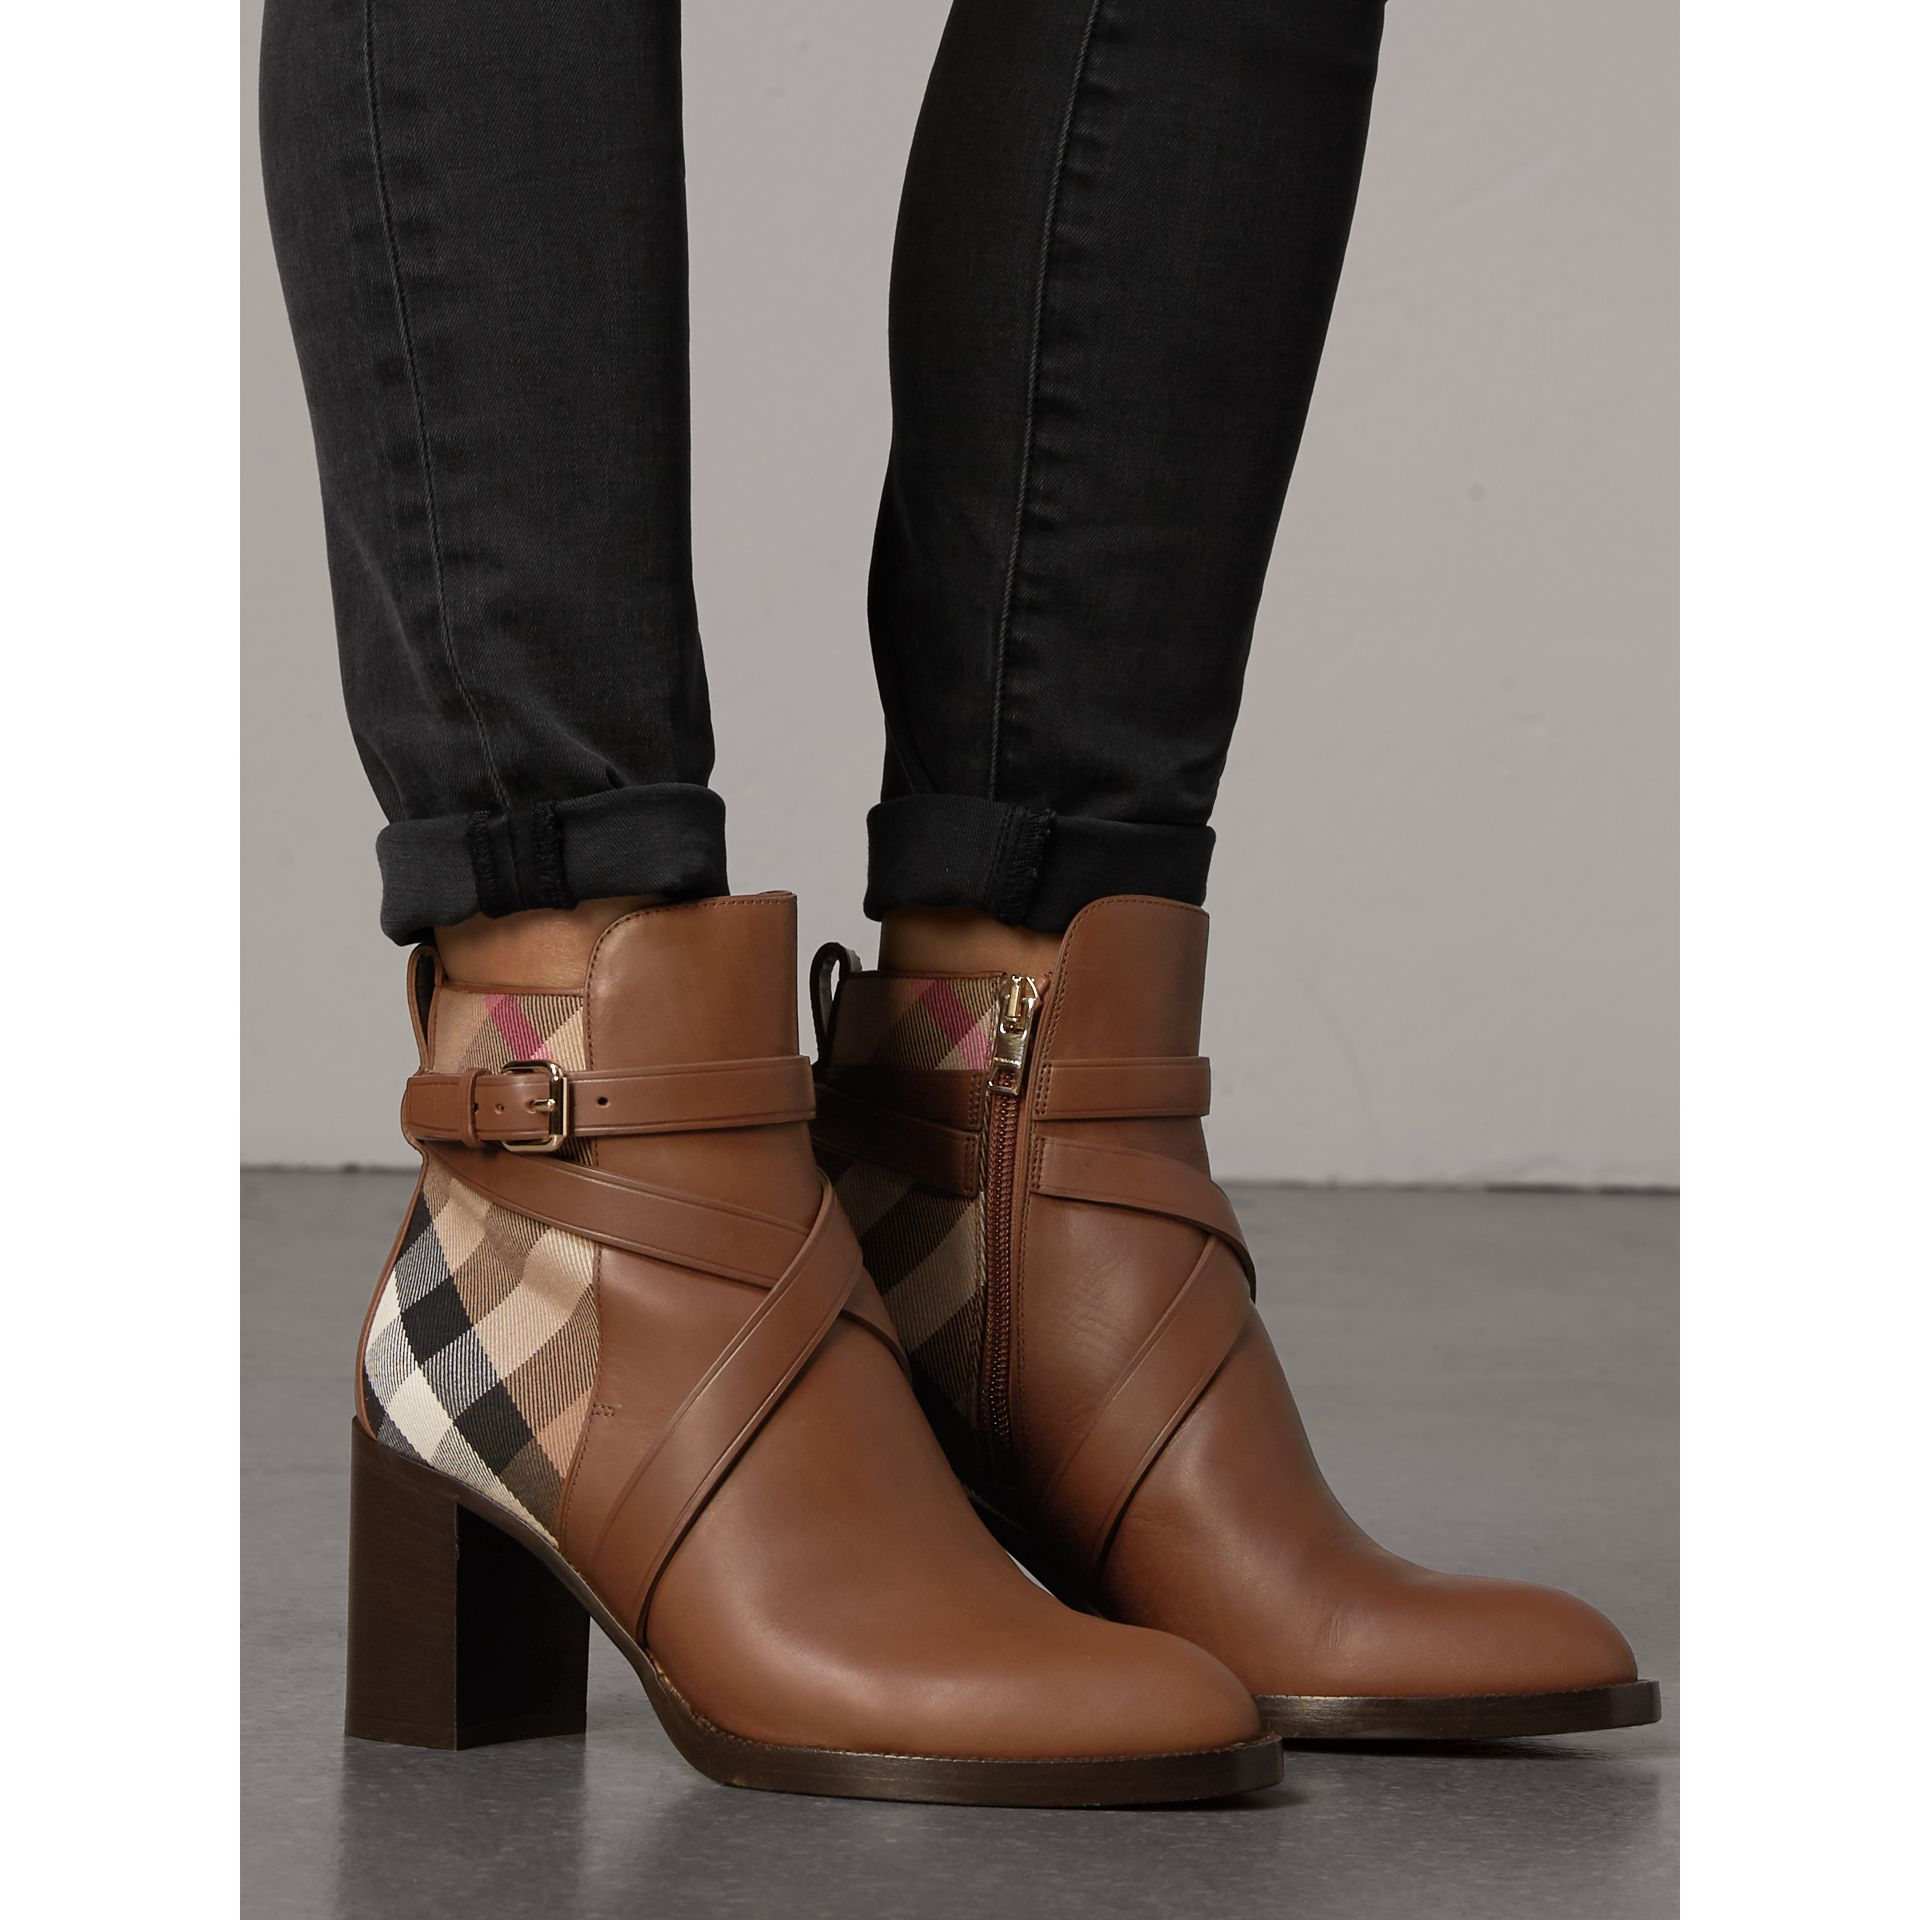 Bottines en cuir et coton House check (Camel Vif) - Femme | Burberry - photo de la galerie 2